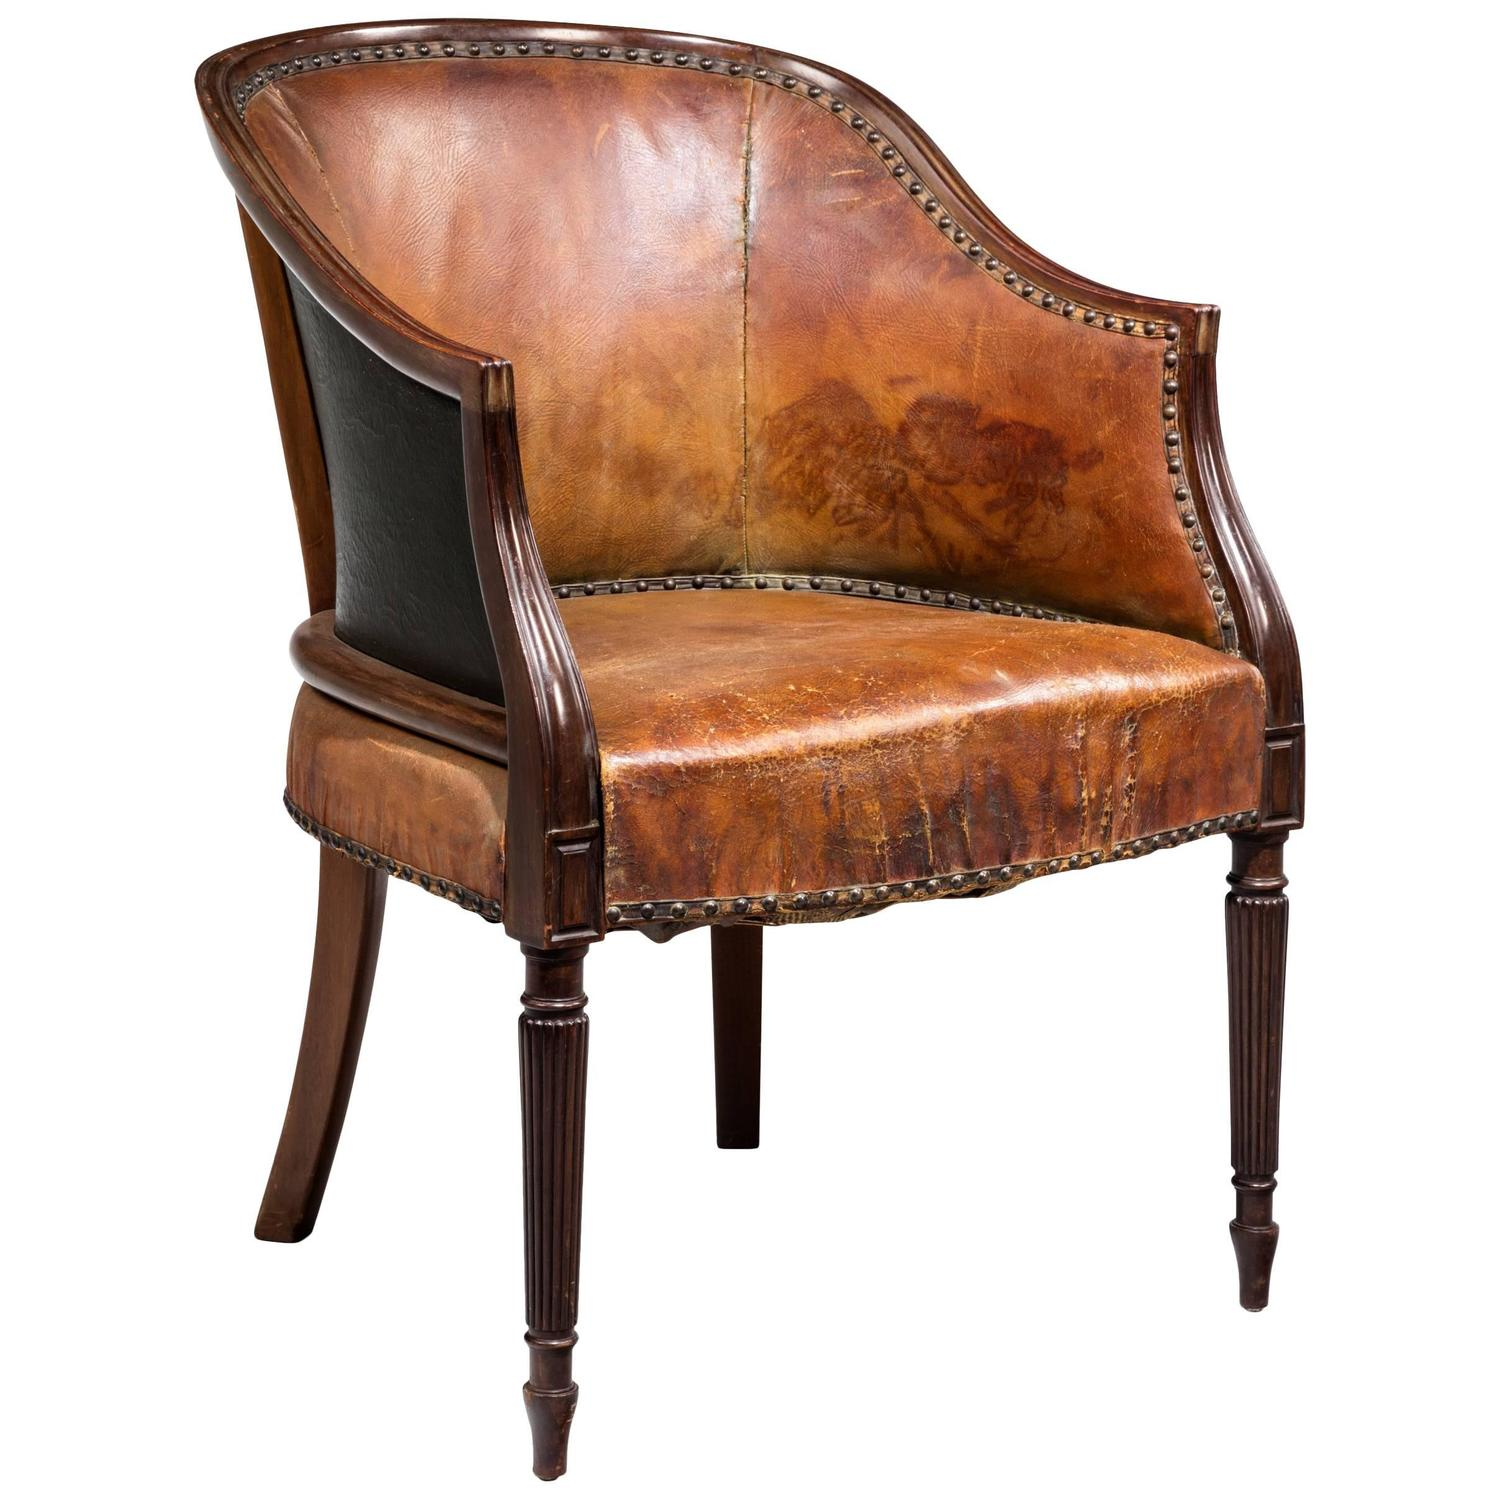 bergere chairs for sale oxo high chair recall late 19th century mahogany framed